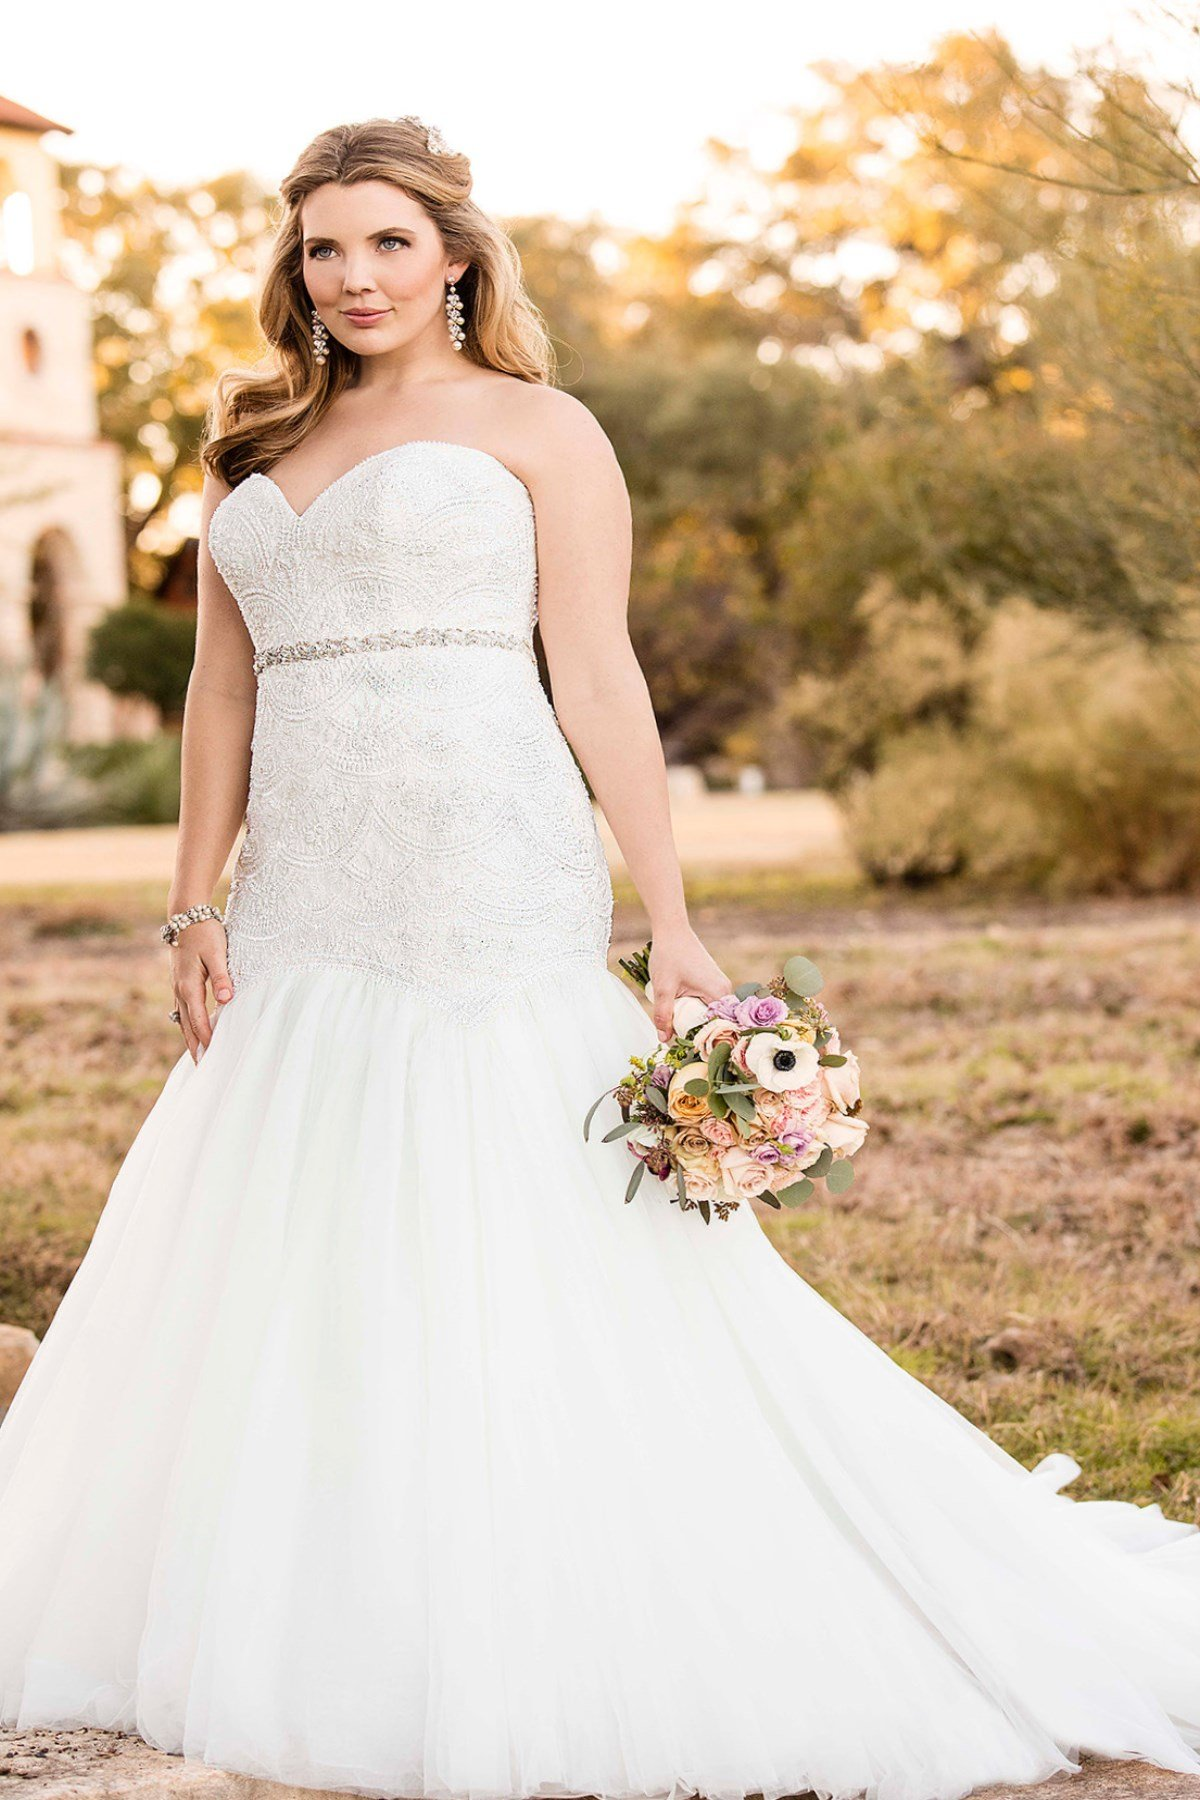 Plus size fall wedding dresses  Bridal Gowns 2018  PlusLookeu Collection and new looks